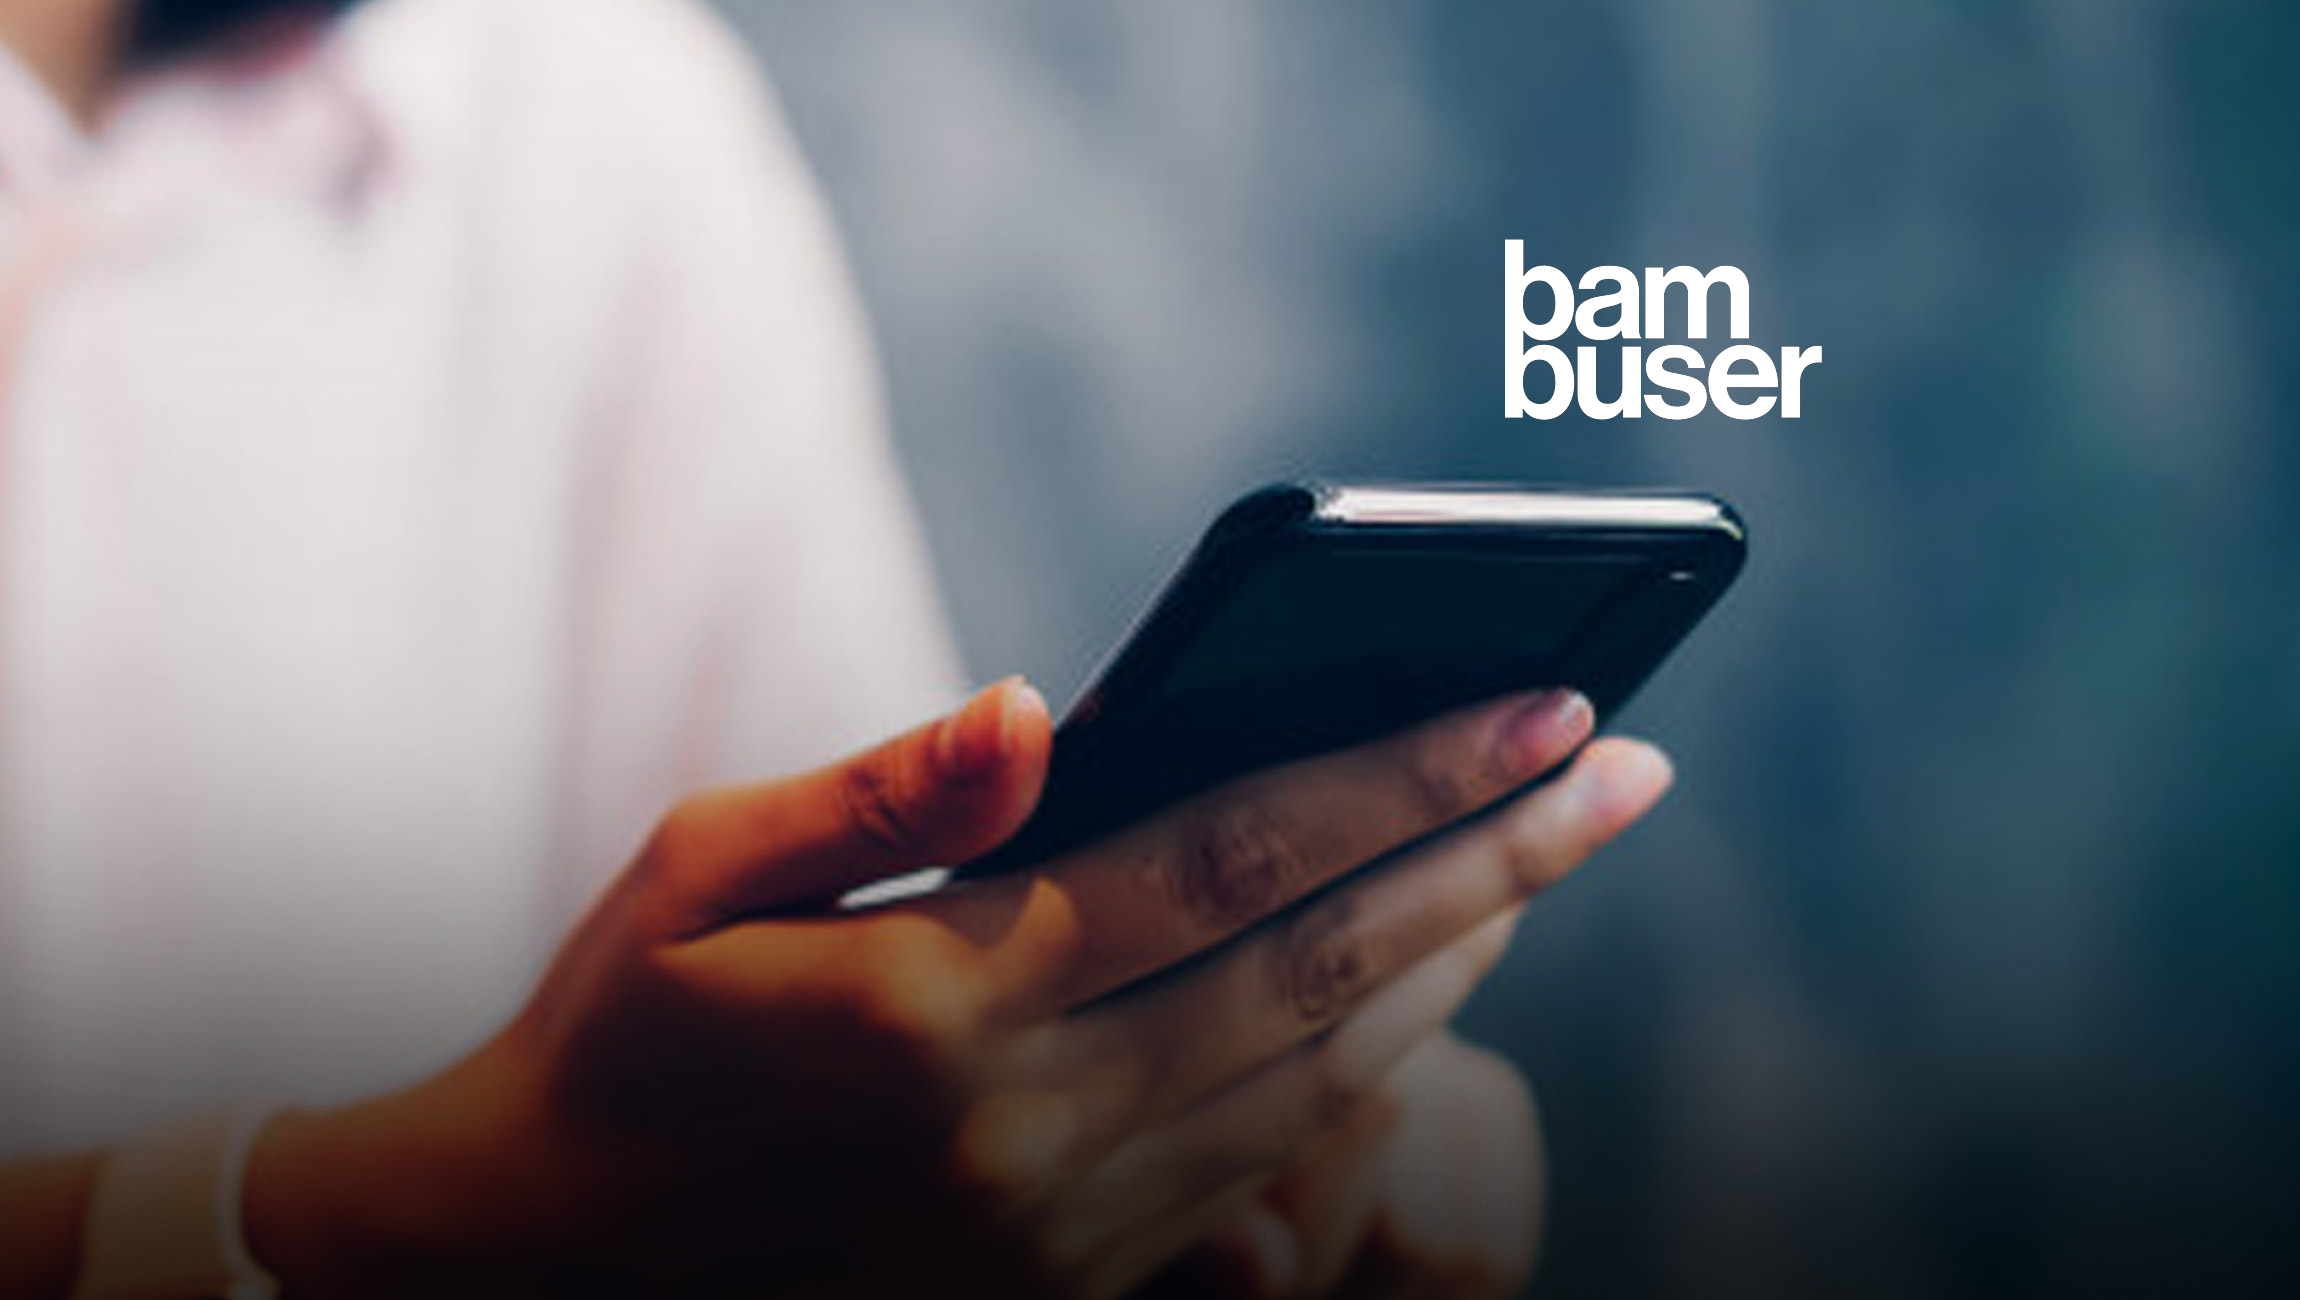 Bambuser Expands Live Video Shopping Production Capabilities for with Launch of Dual Hosting & External Camera Compatibility